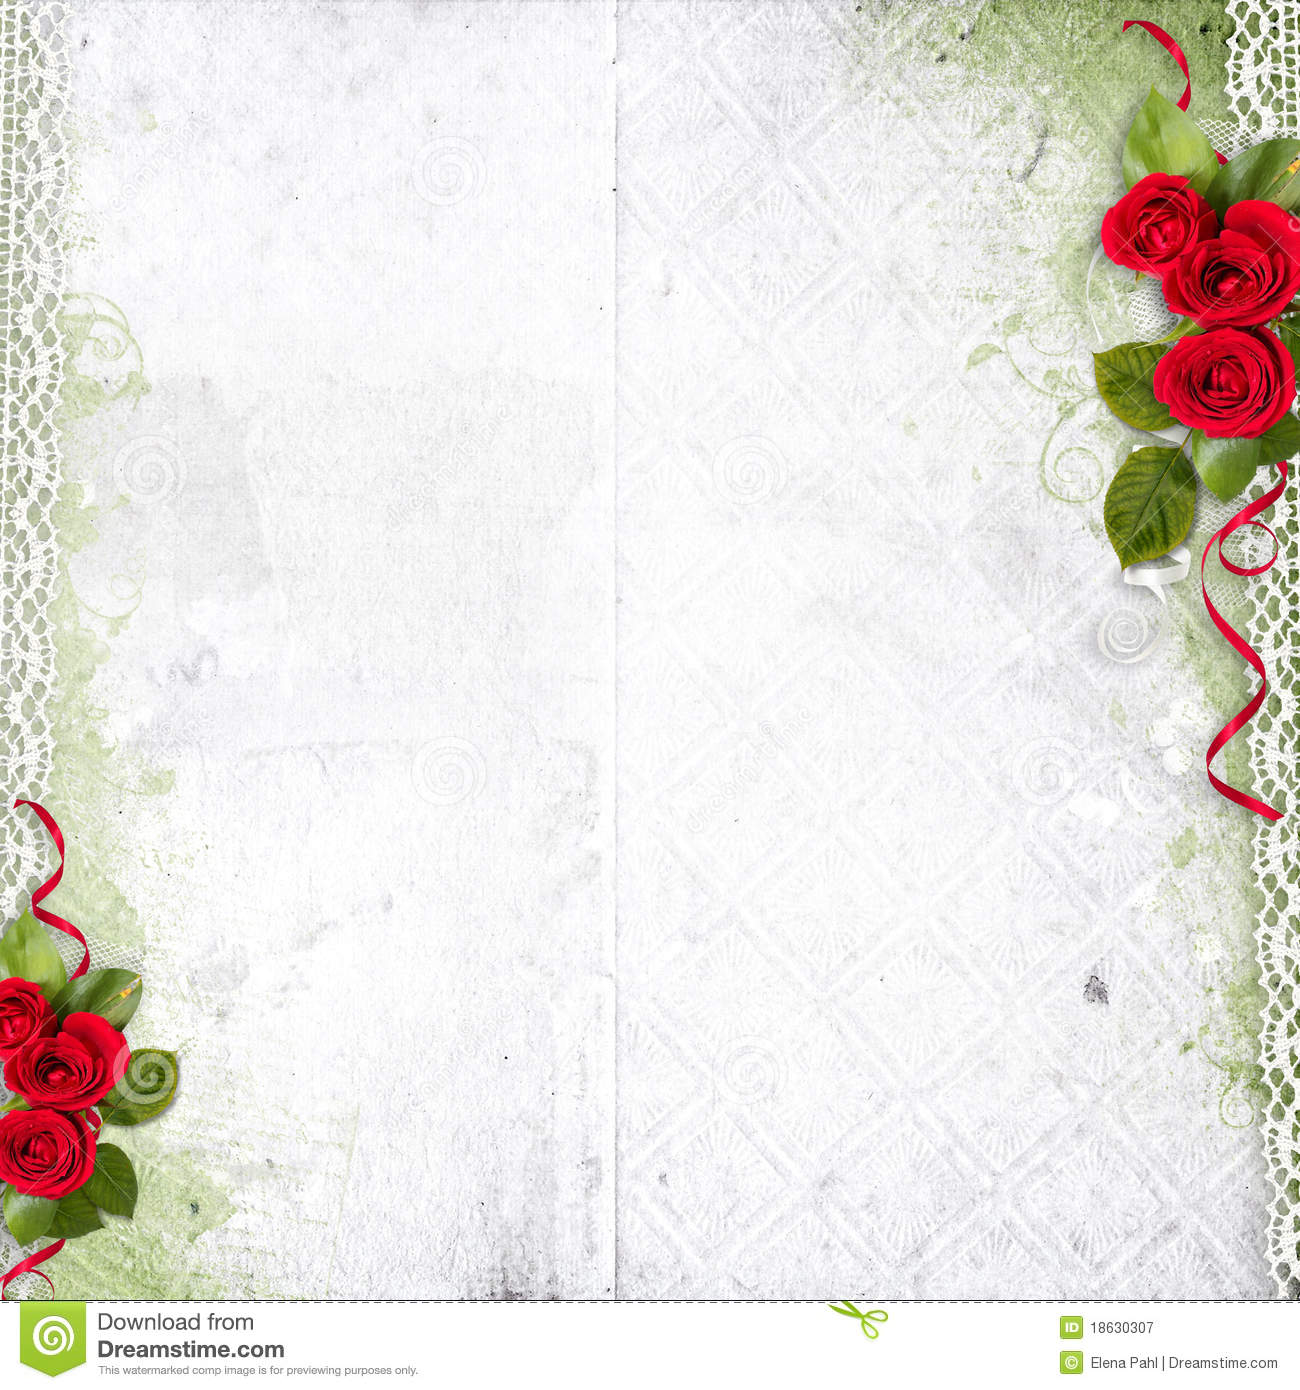 Black Flower Rose From Lace On White Background: White Background With Red Roses And Lace Royalty Free